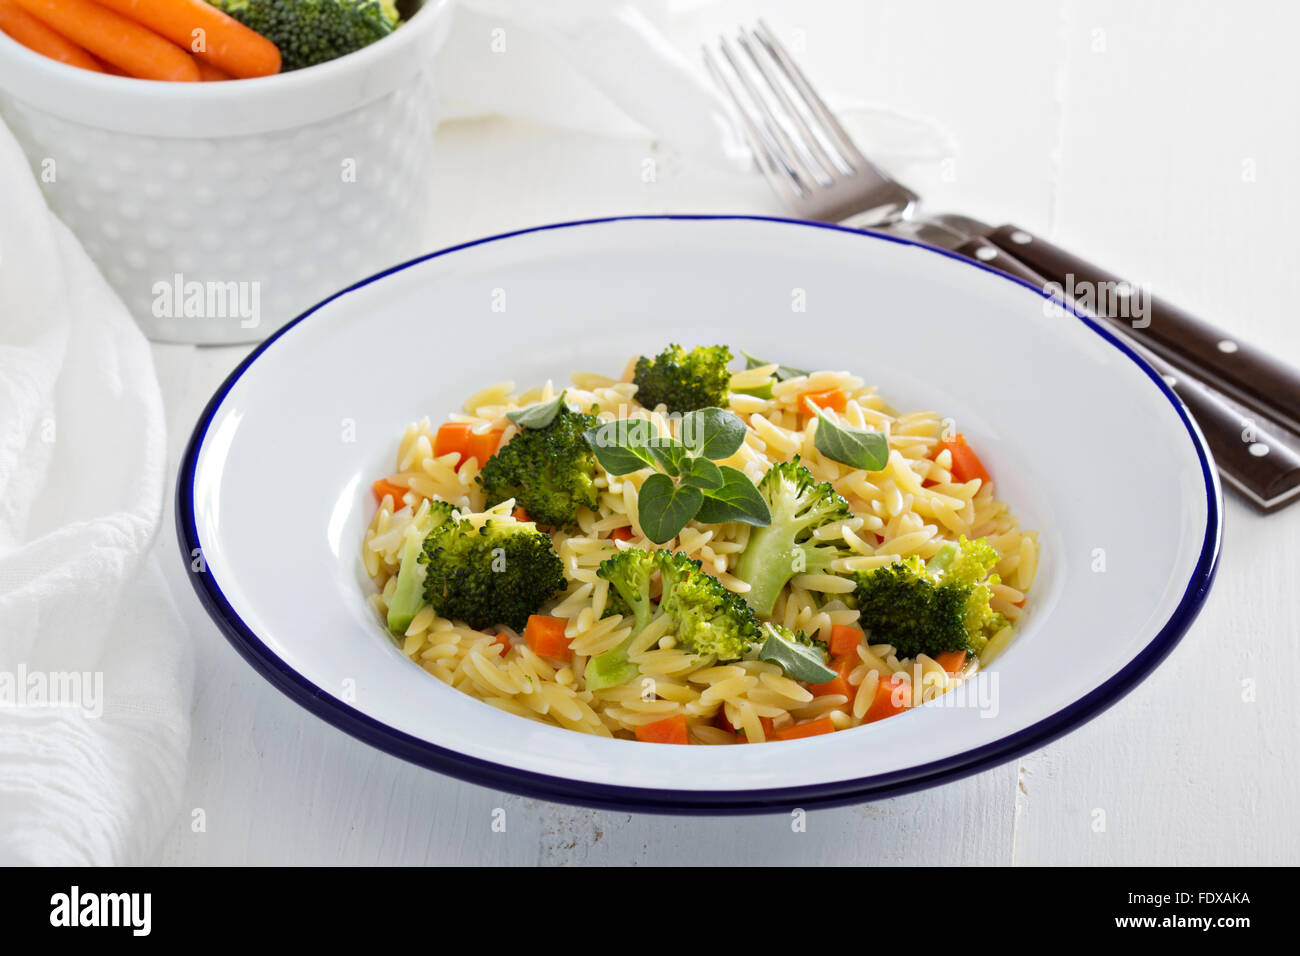 Pasta with broccoli and carrot cooked in stock - Stock Image